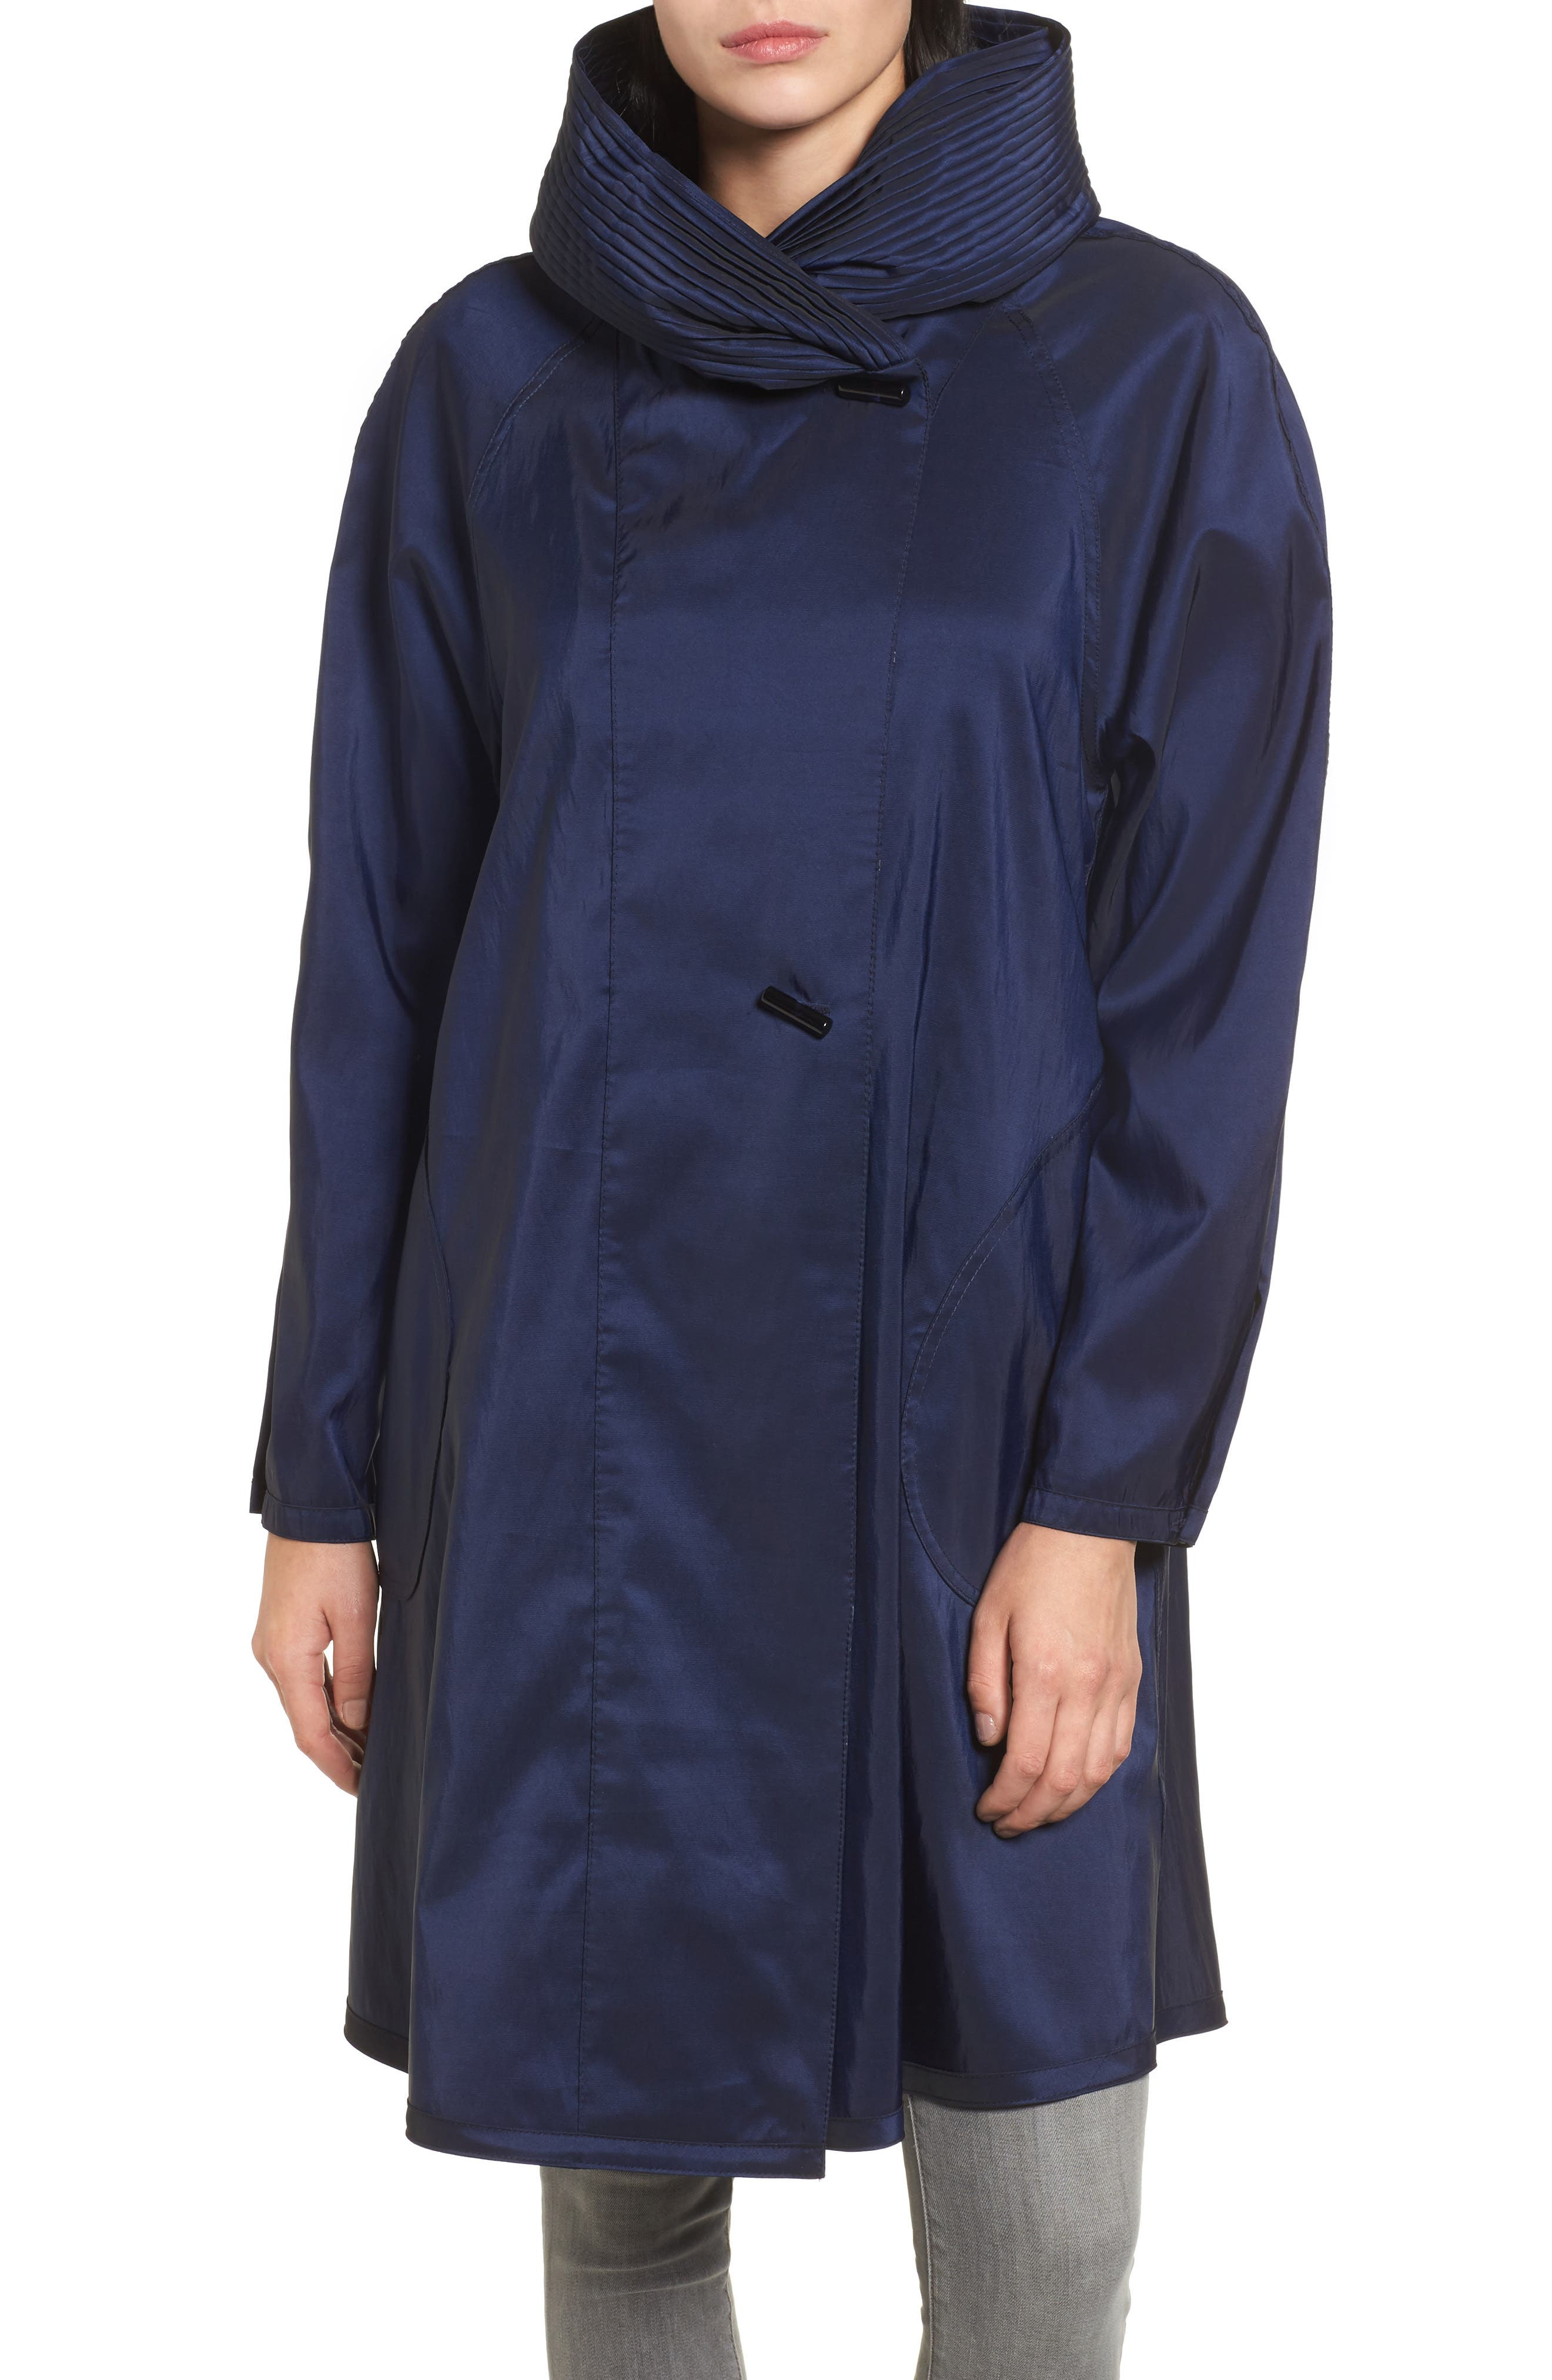 Main Image - Mycra Pac Designer Wear 'Donatella' Reversible Dot Pleat Hood Packable Travel Coat